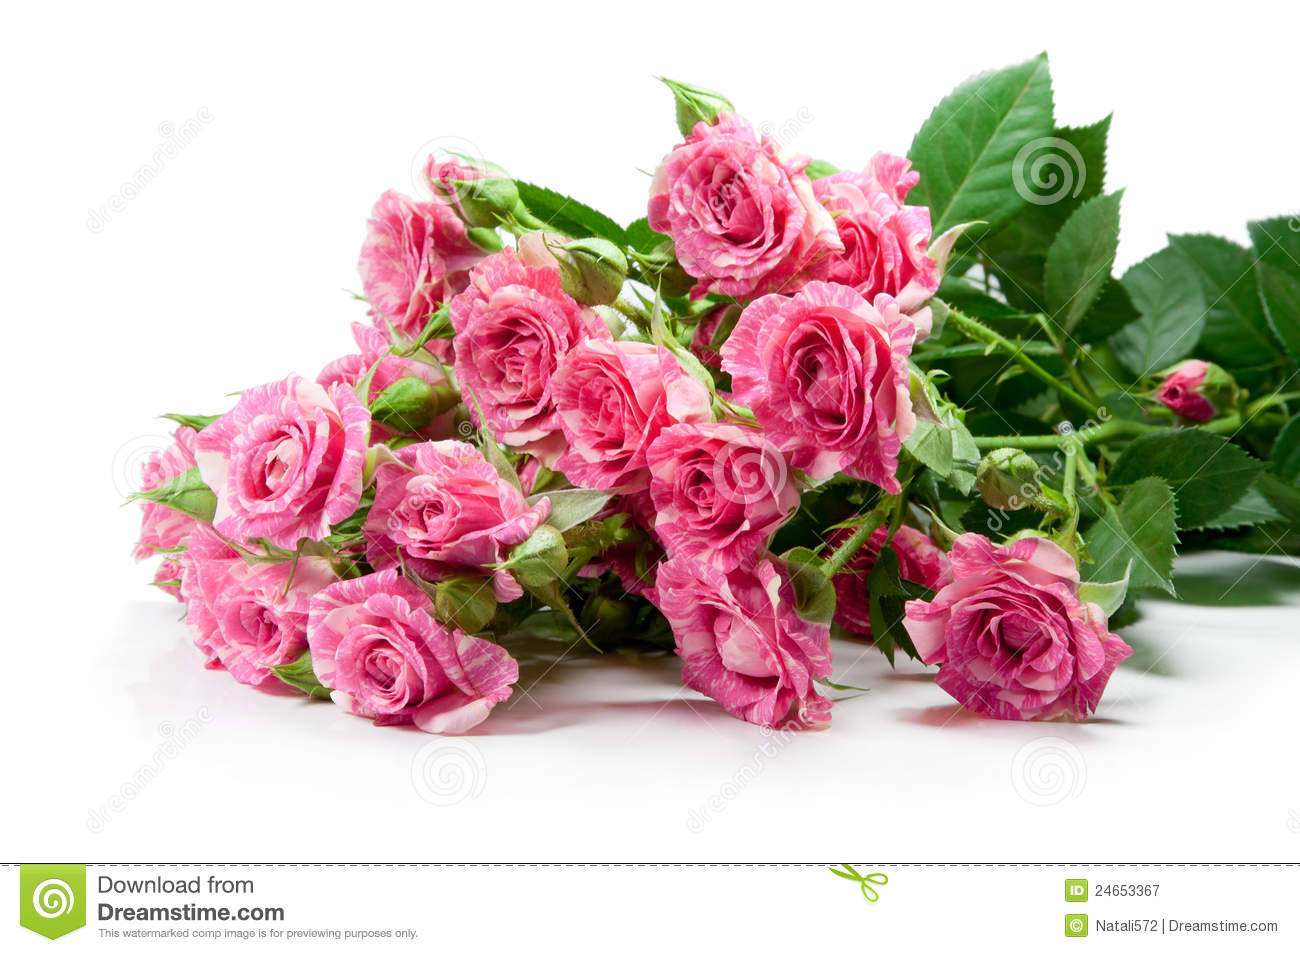 Bouquet de la couleur rose douce des roses image stock for Bouquet de rose